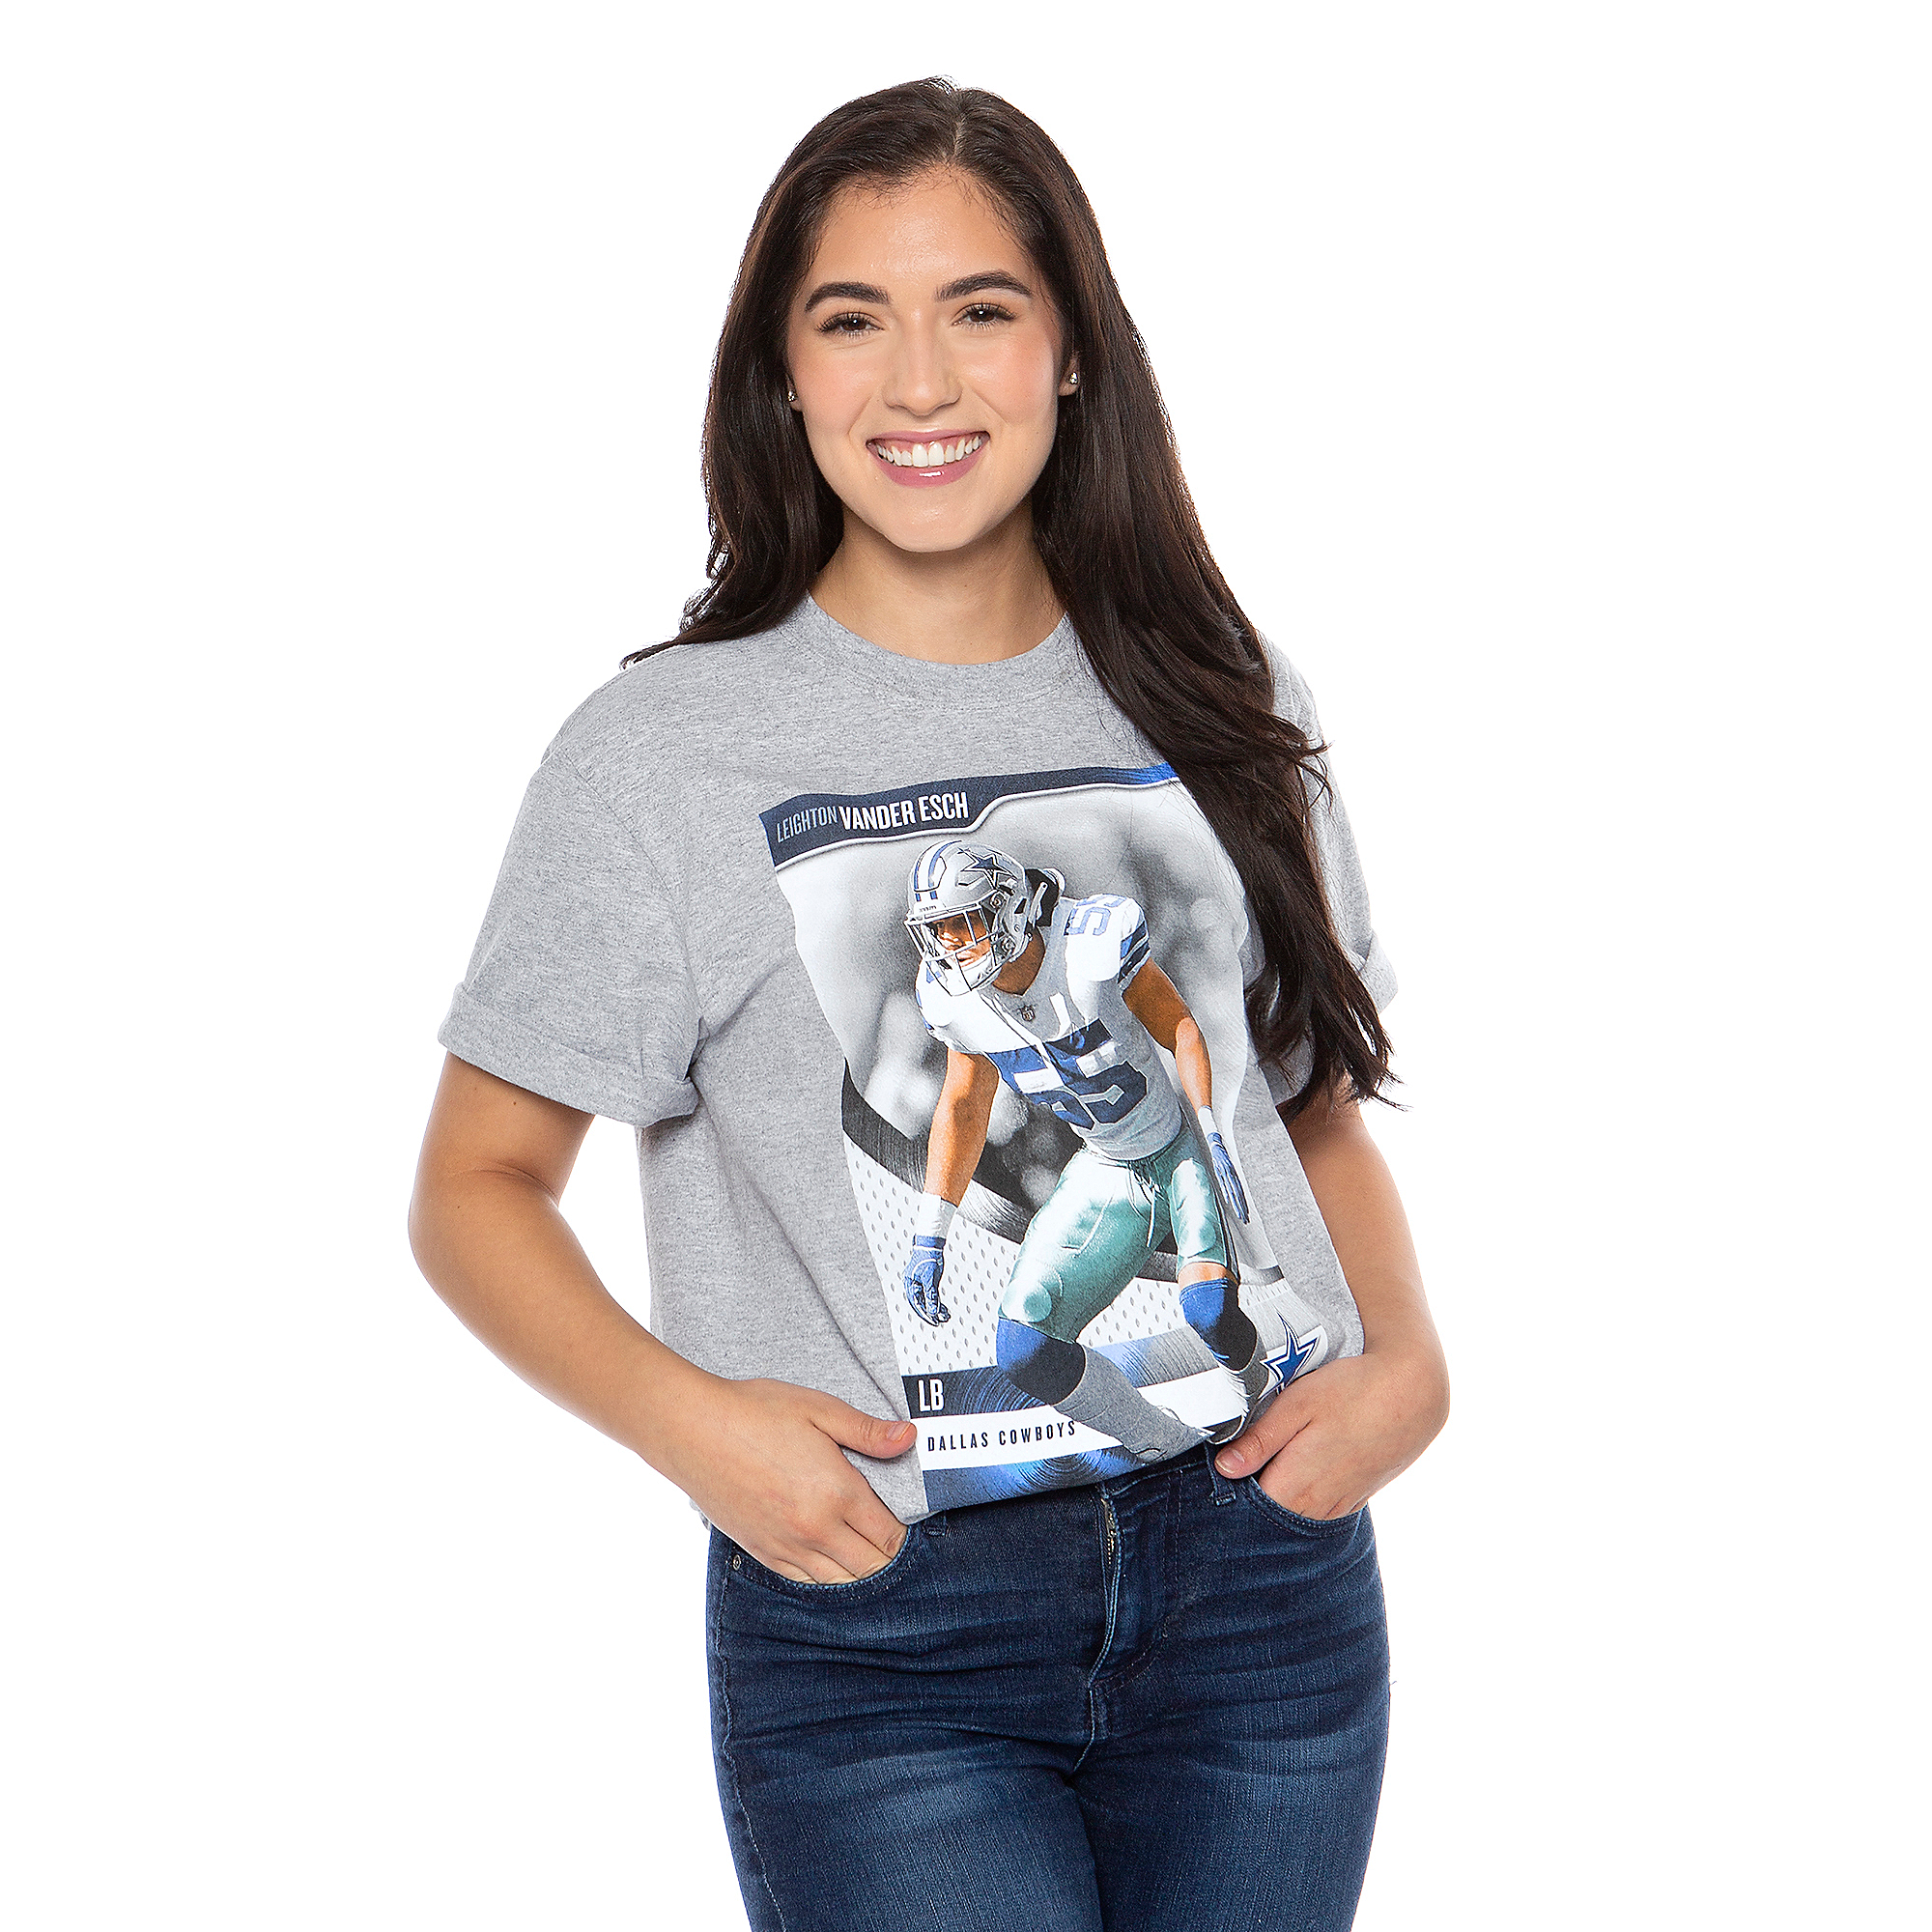 Dallas Cowboys America's Team Leighton Vander Esch #55 T-Shirt